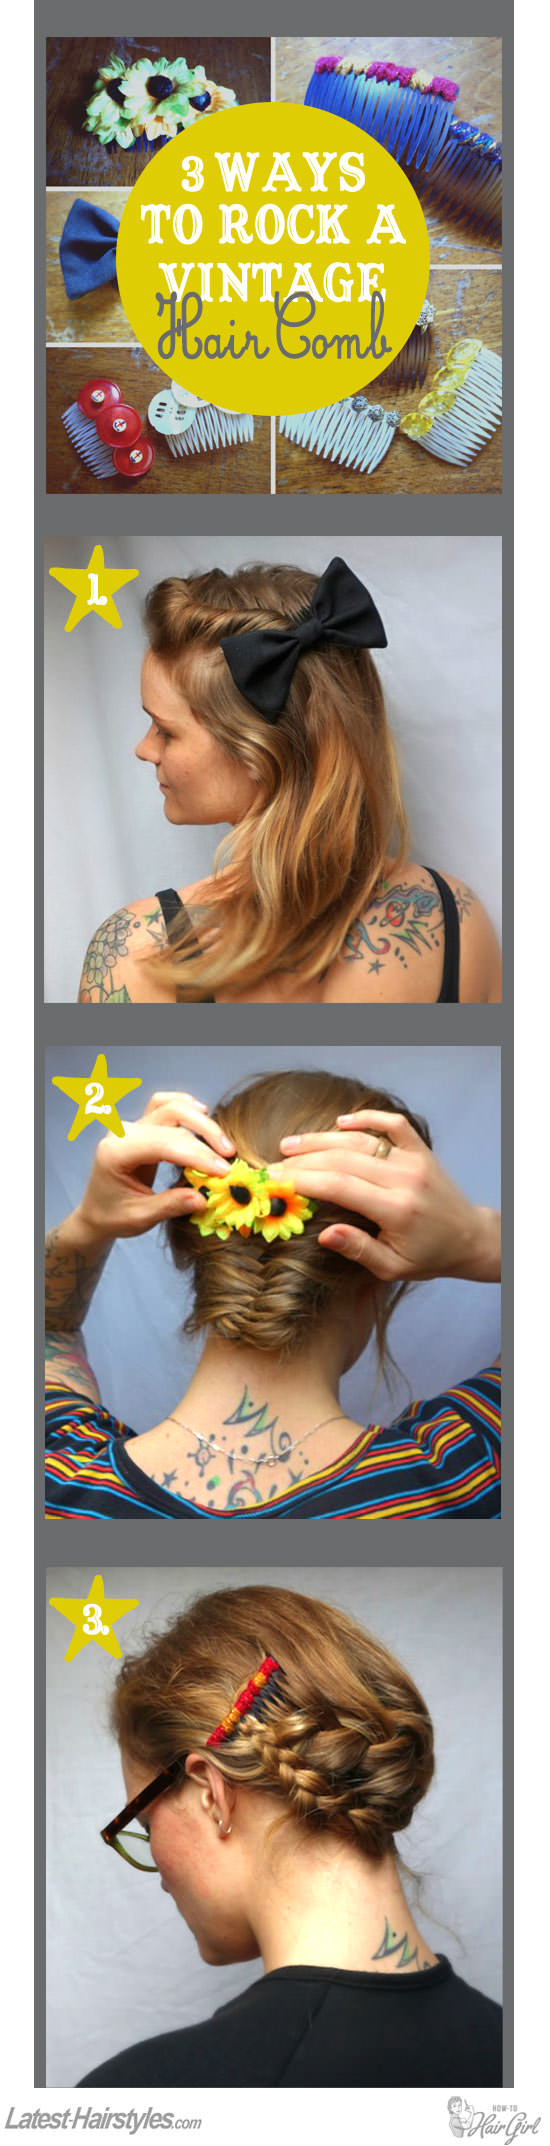 The 3 Hottest Ways to Rock a Vintage Hair Comb